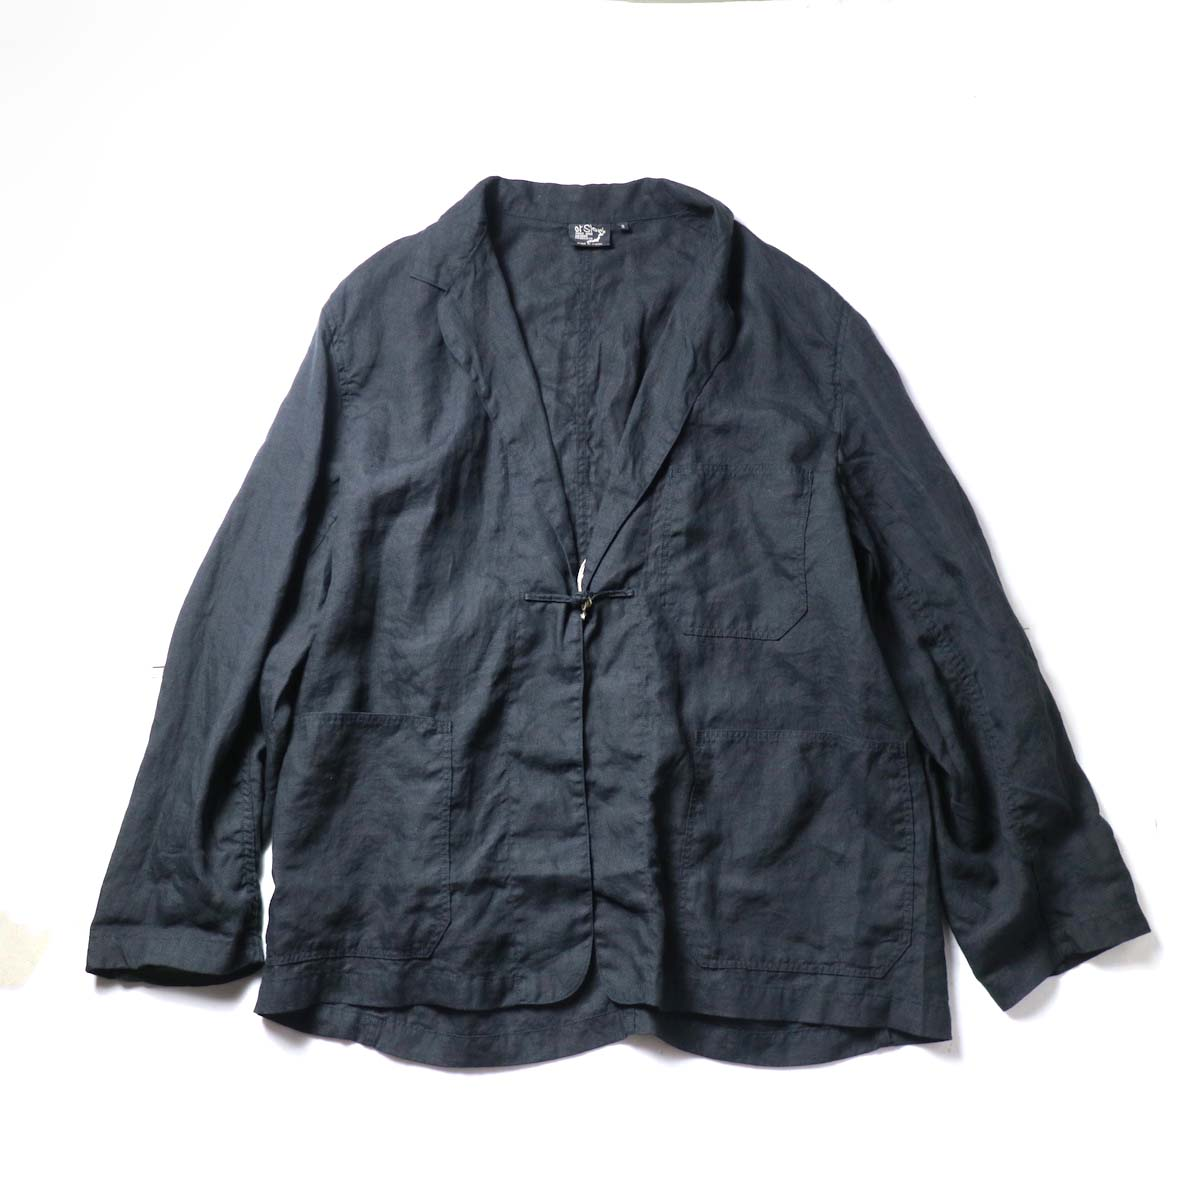 orSlow / Frog Button Linen Jacket 正面